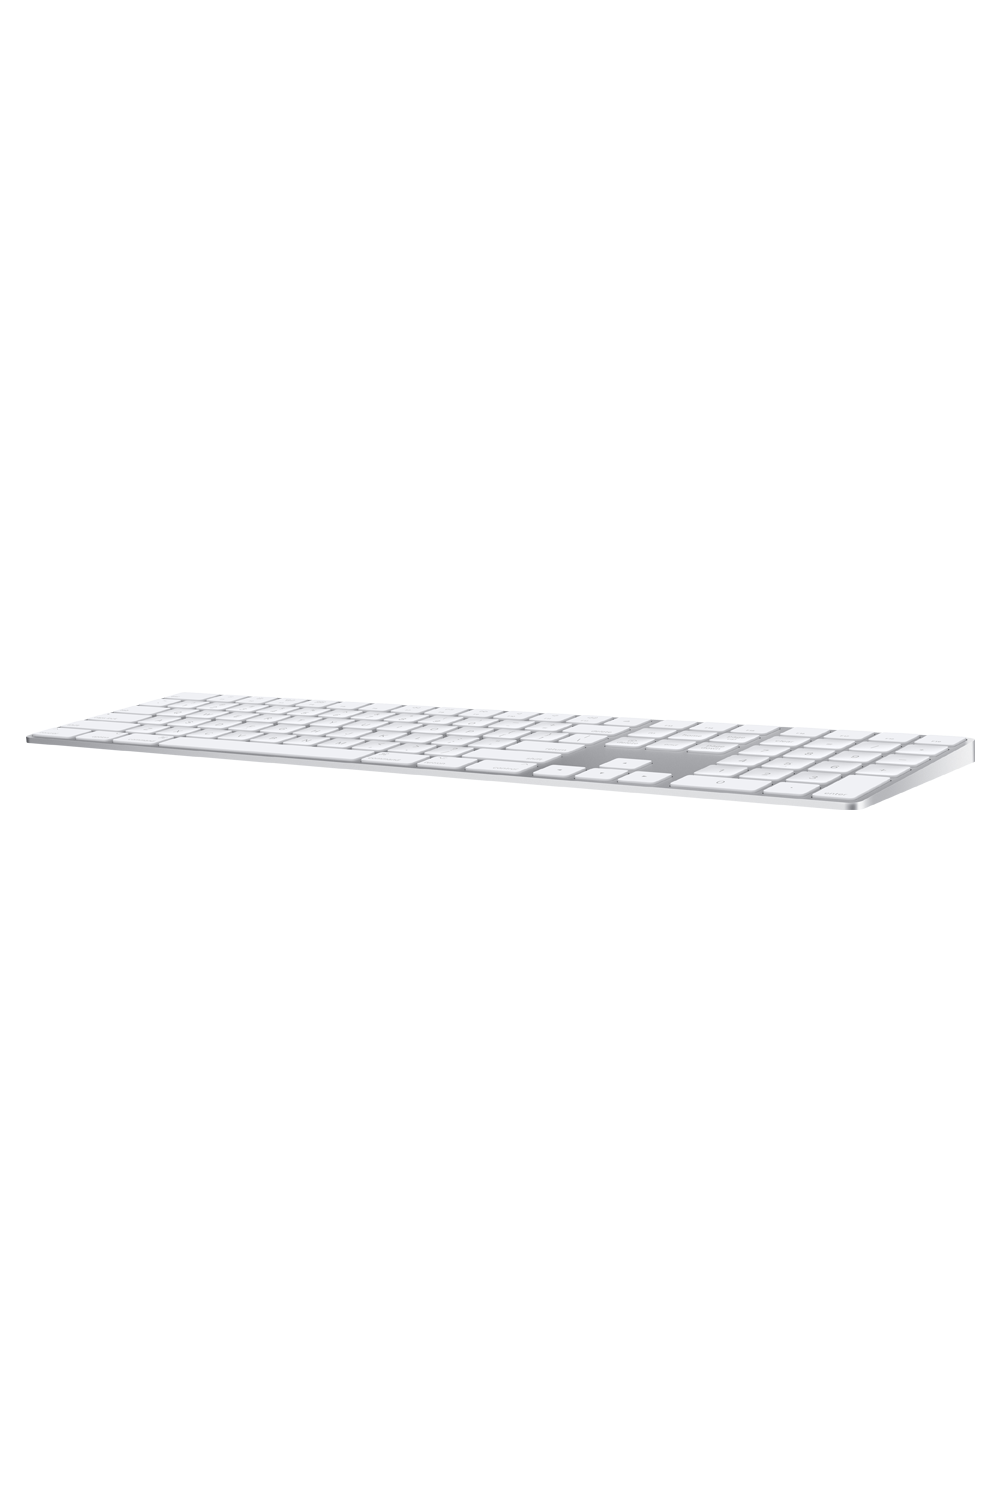 Apple Magic Keyboard with Numeric Keypad | US English | Silver - QuickTech.in